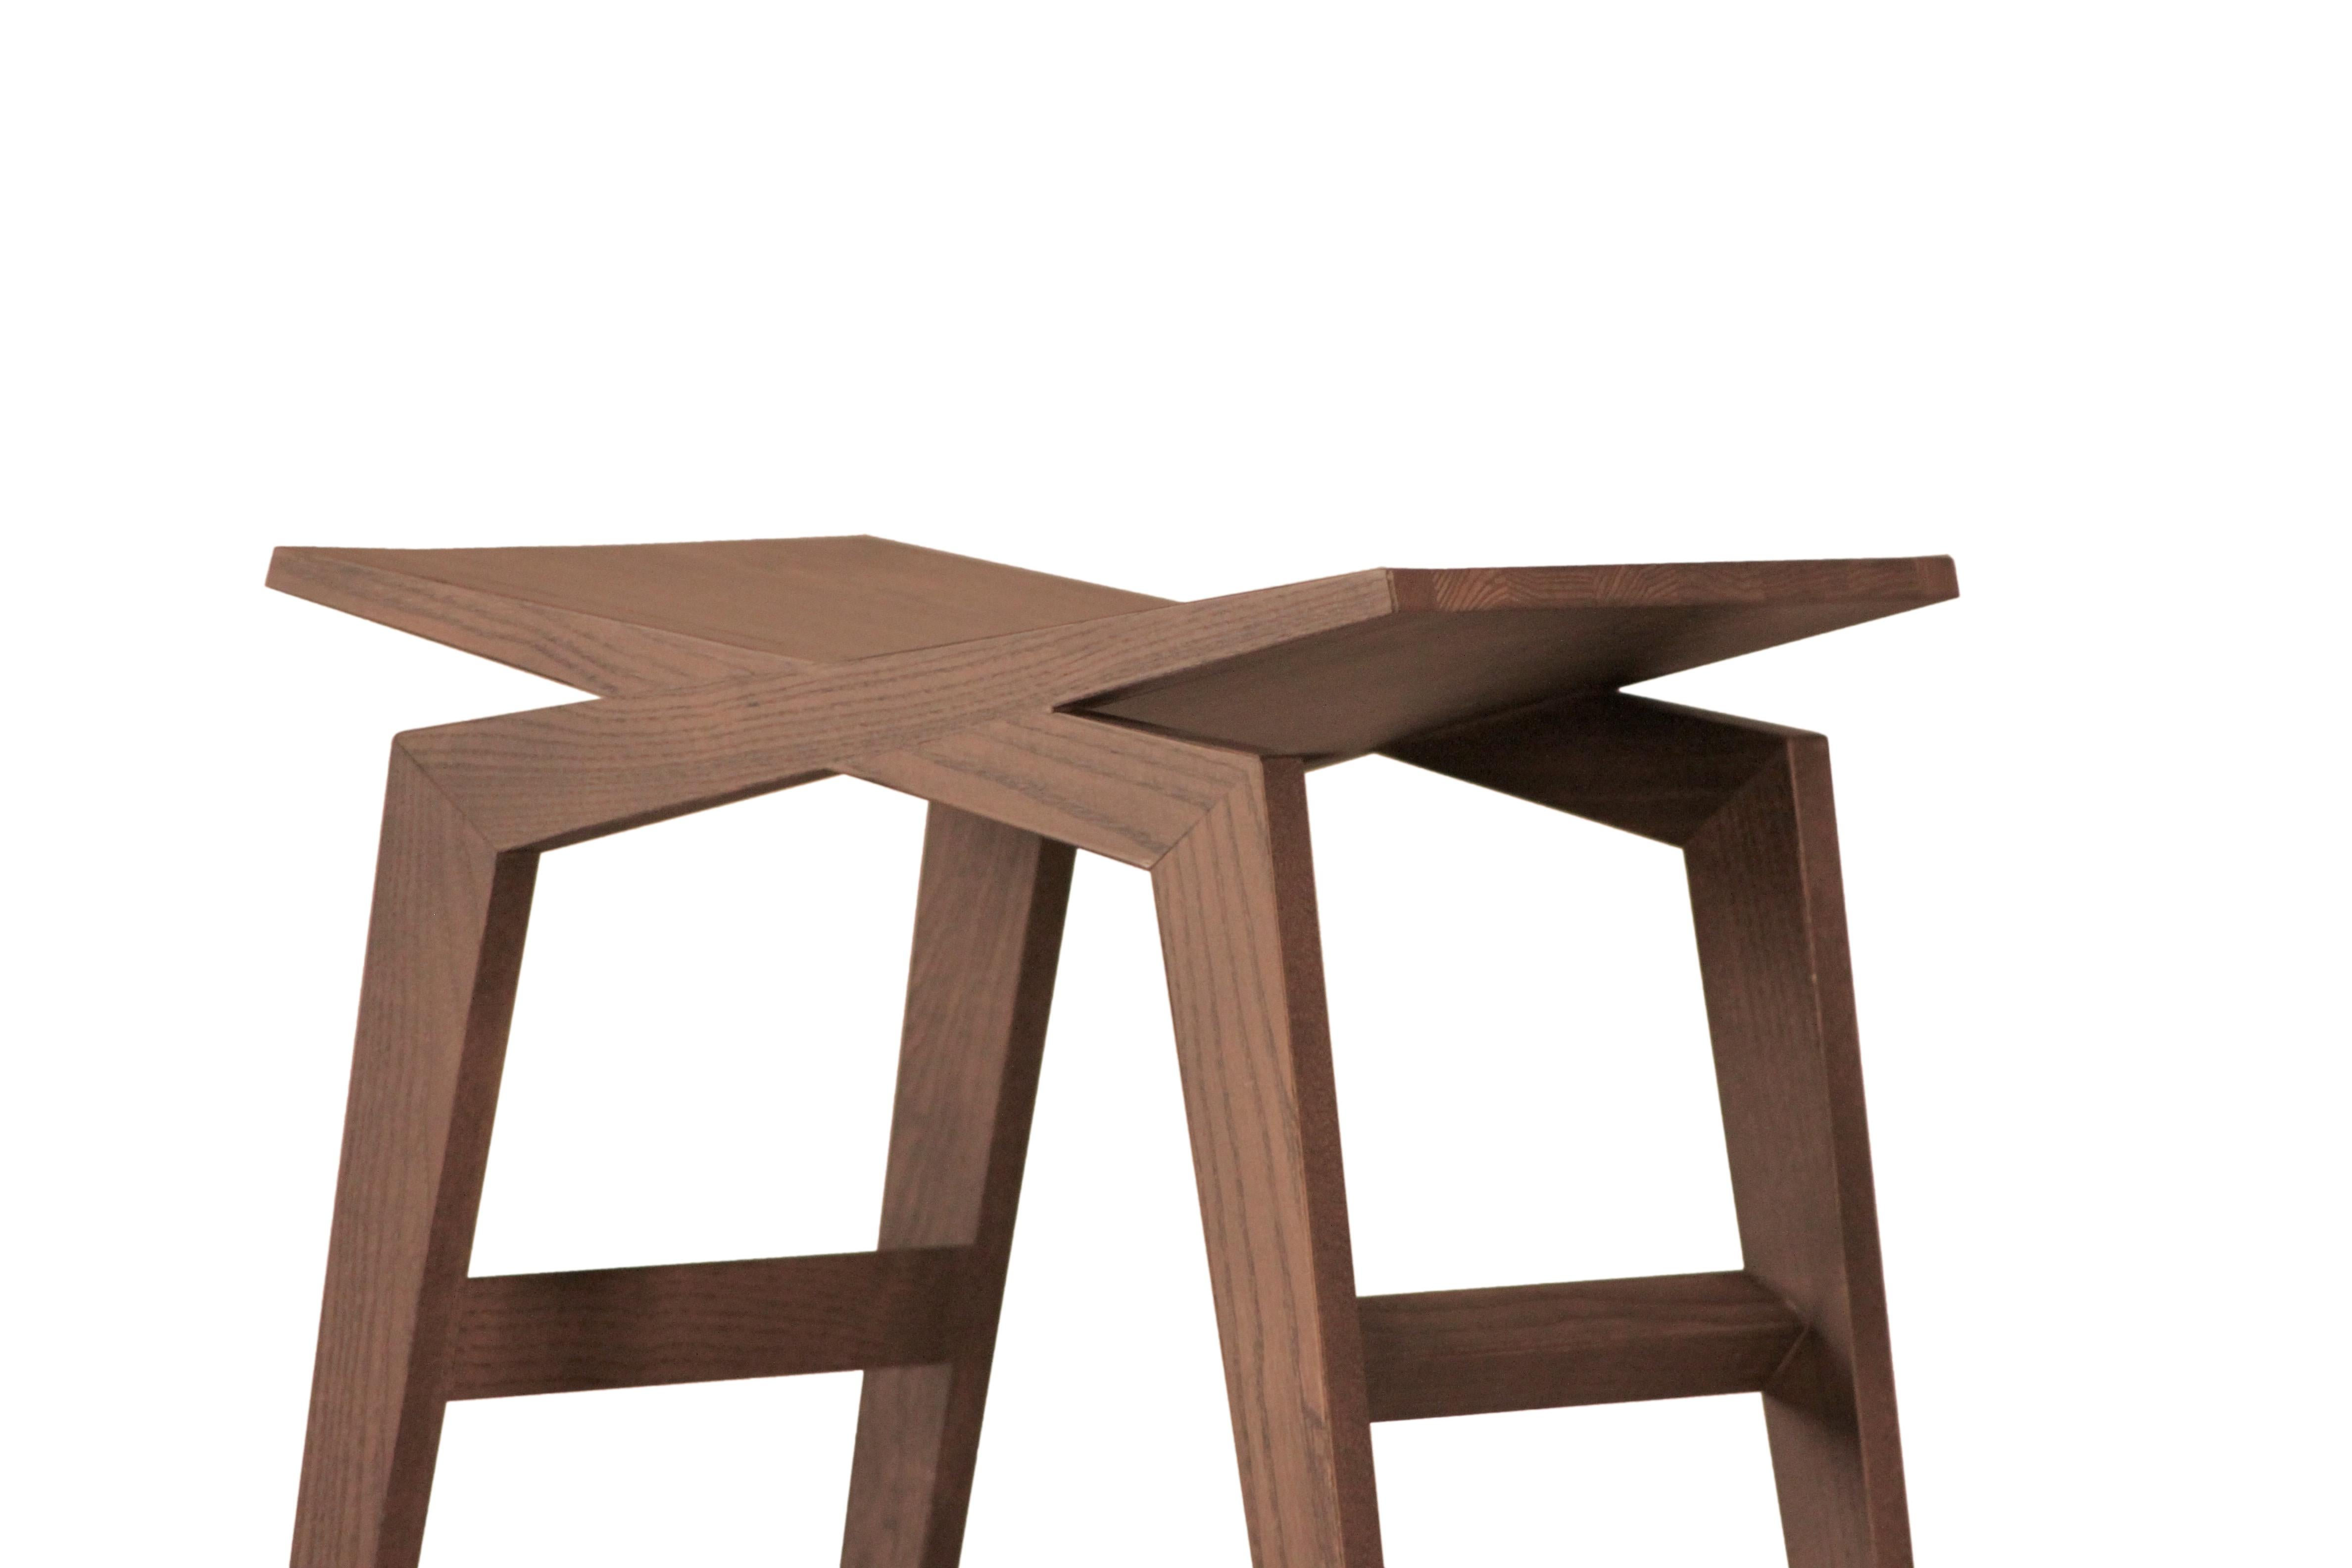 Icaro contemporary bar stool made of solid ashwood for sale at 1stdibs